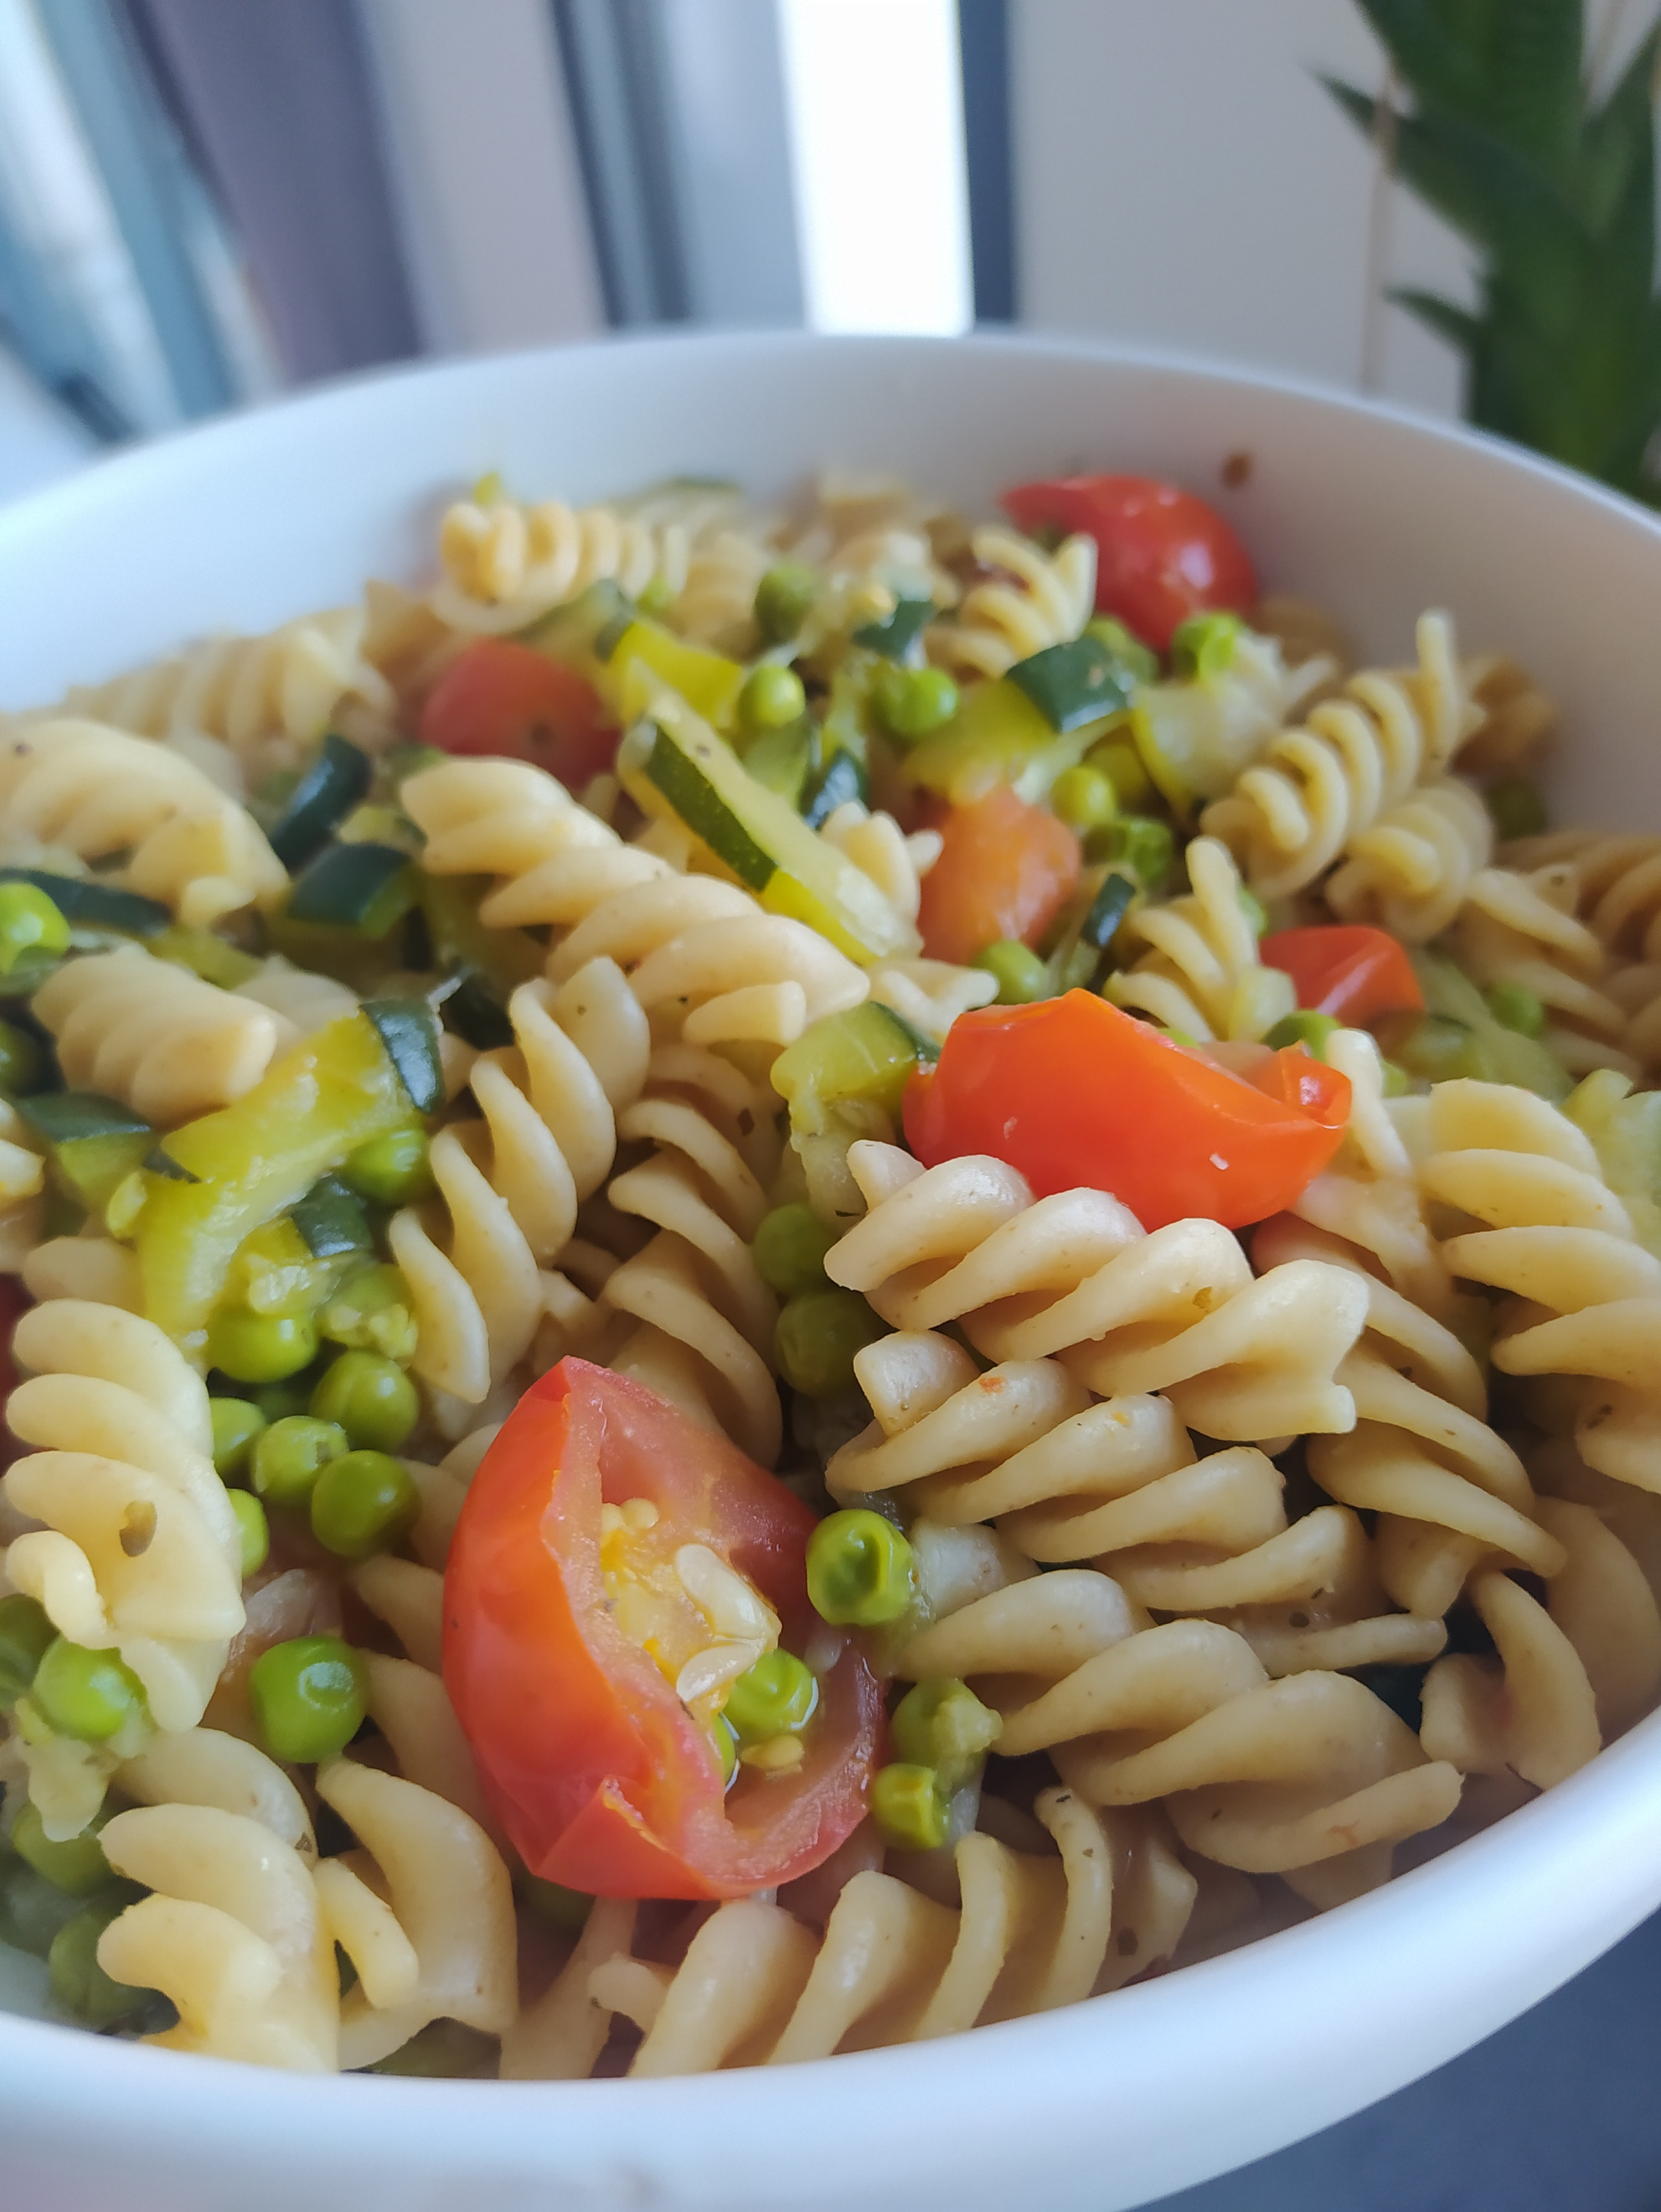 One pasta courgettes